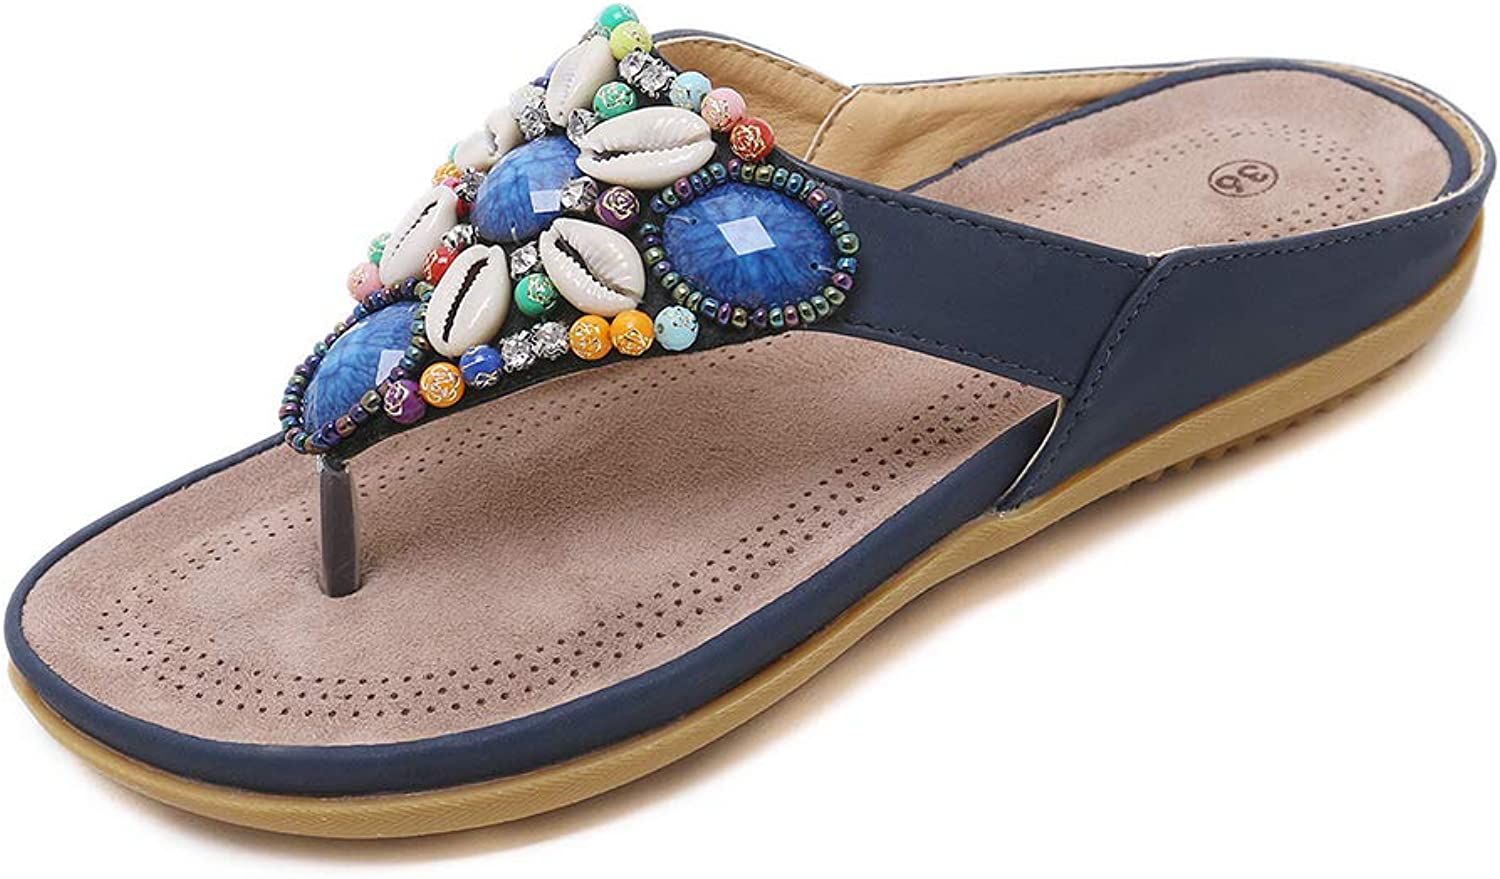 Navoku Womens Leather Jeweled Beaded Thong Flat Sandals Flip Flops